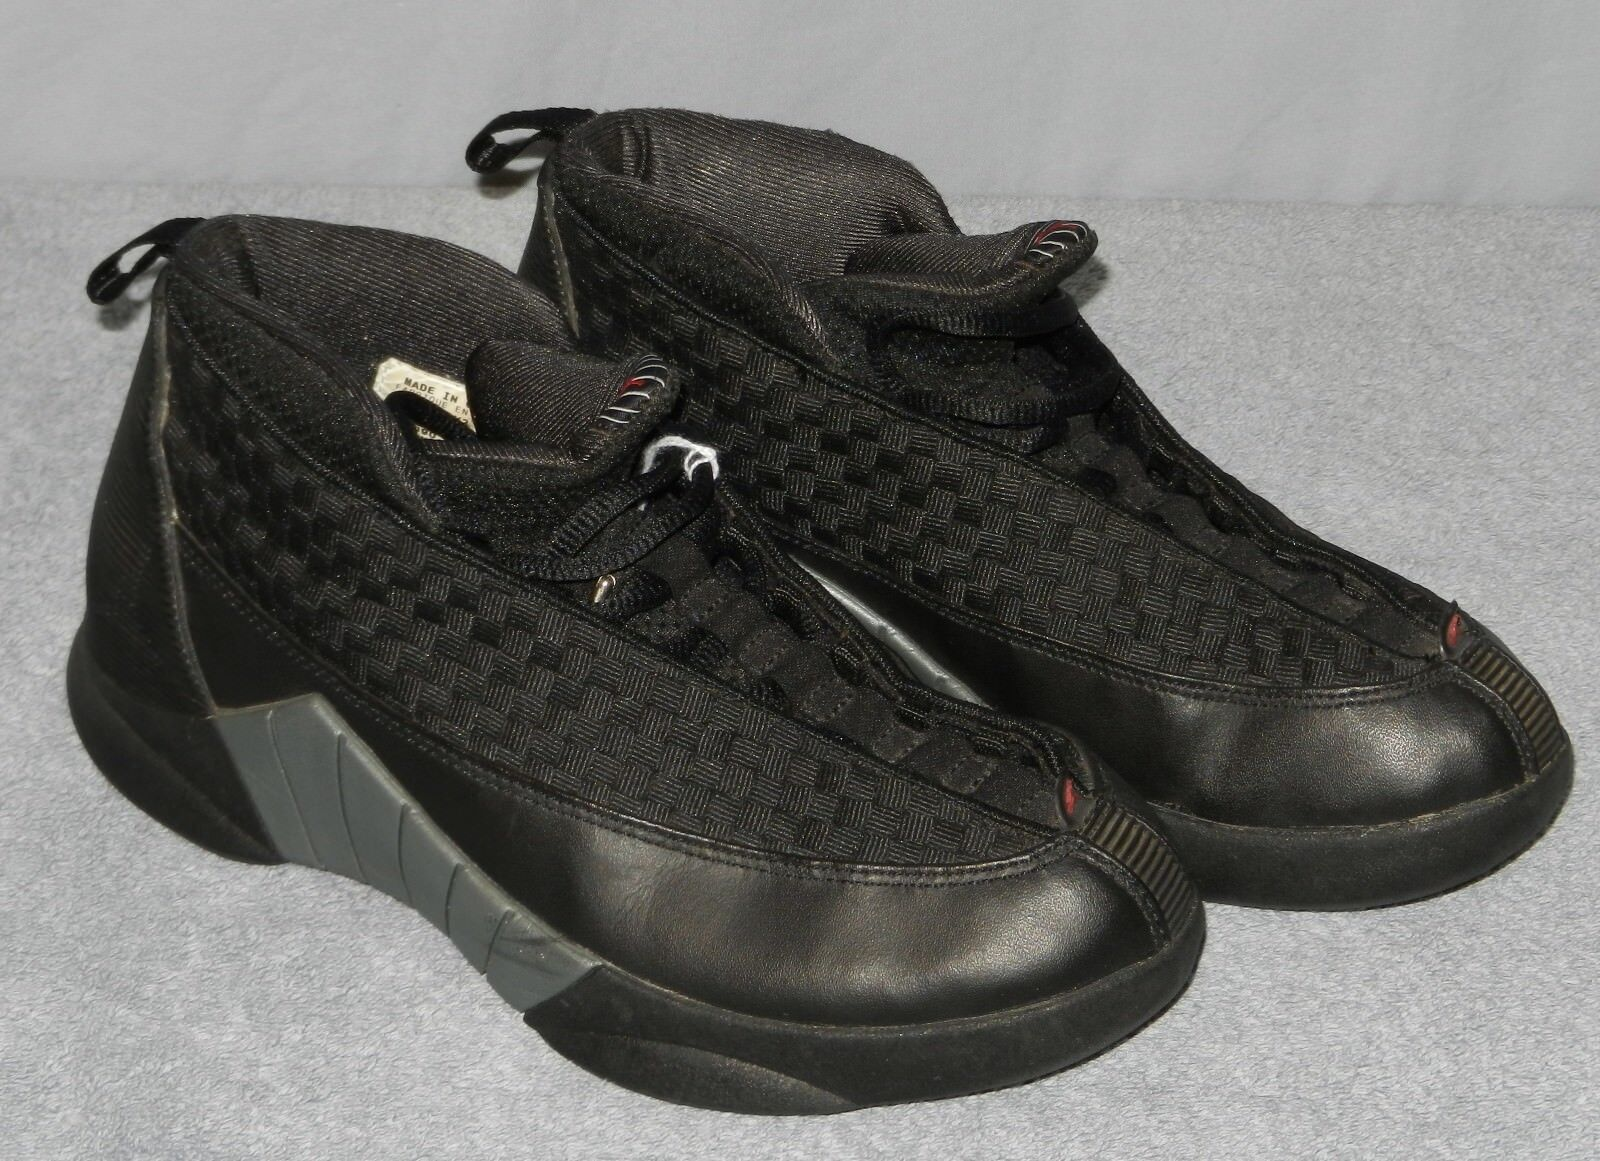 Boys Original 1999 Air Jordan 15 XV Stealth Shoes Size 6 Y Black Gray 134090